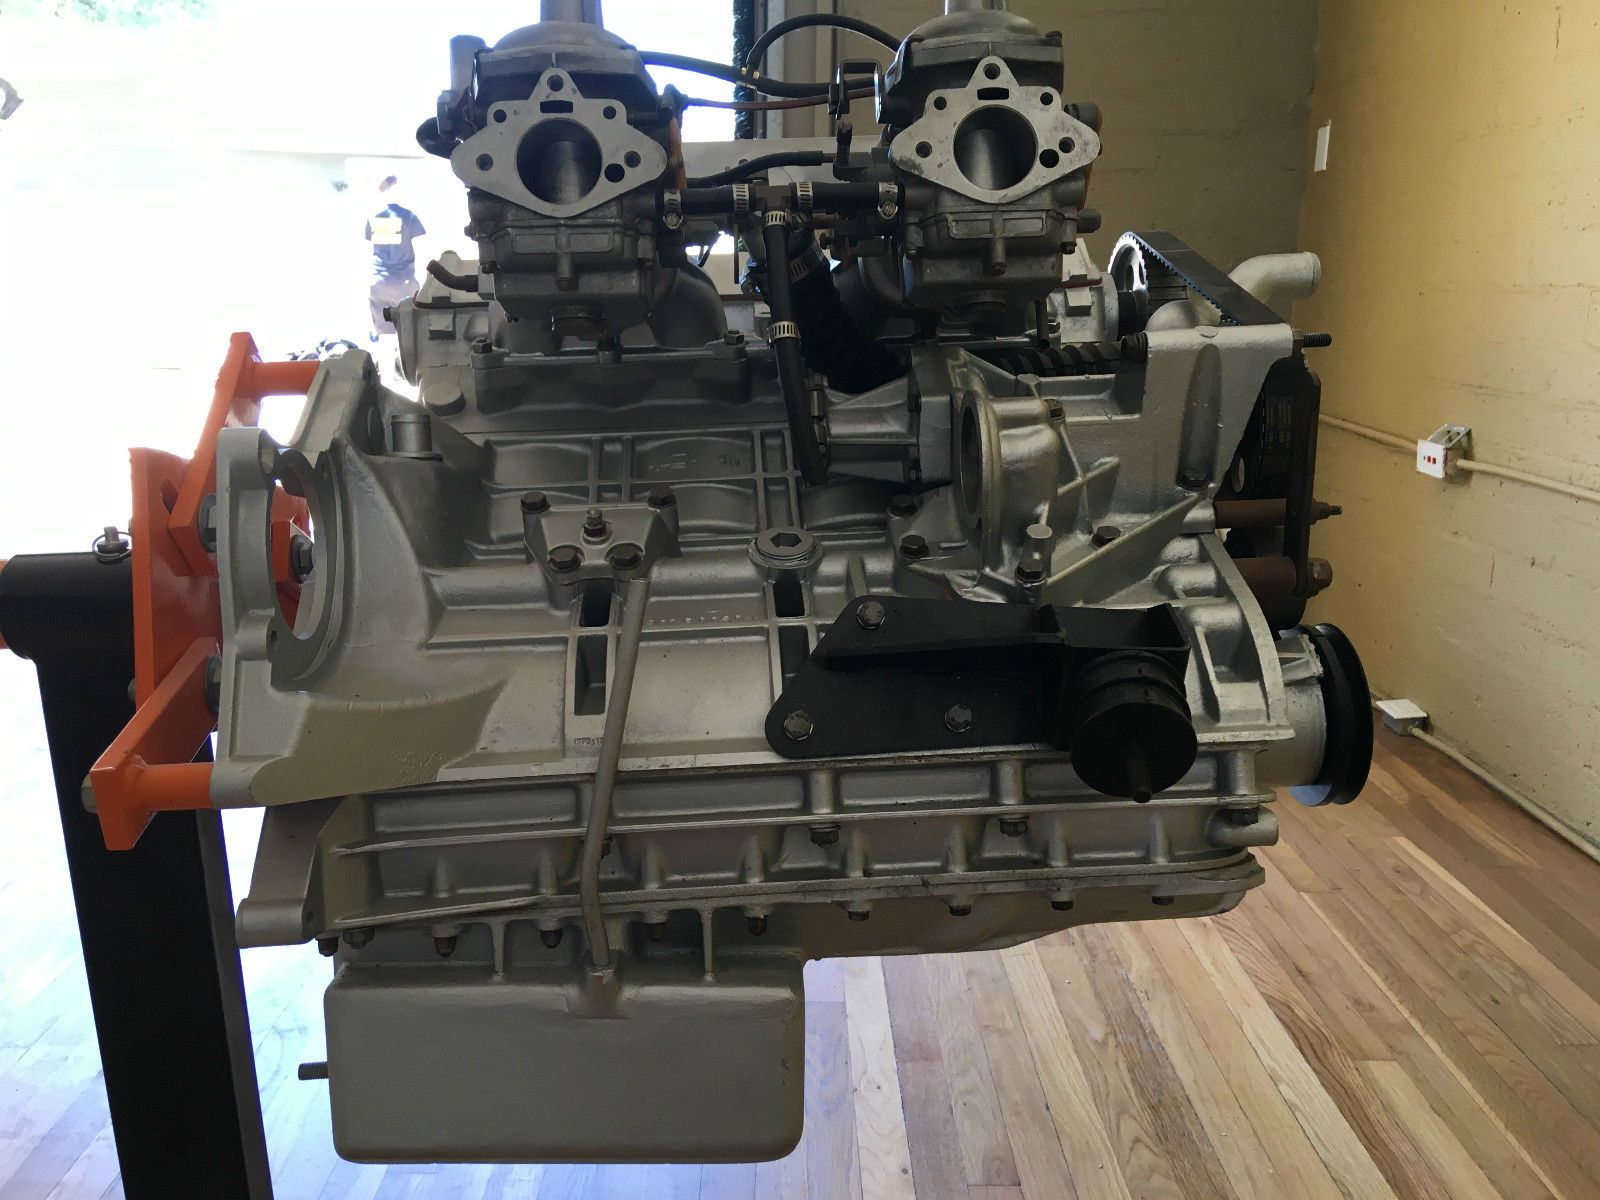 US $4,995.00 Remanufactured in eBay Motors, Parts & Accessories ...